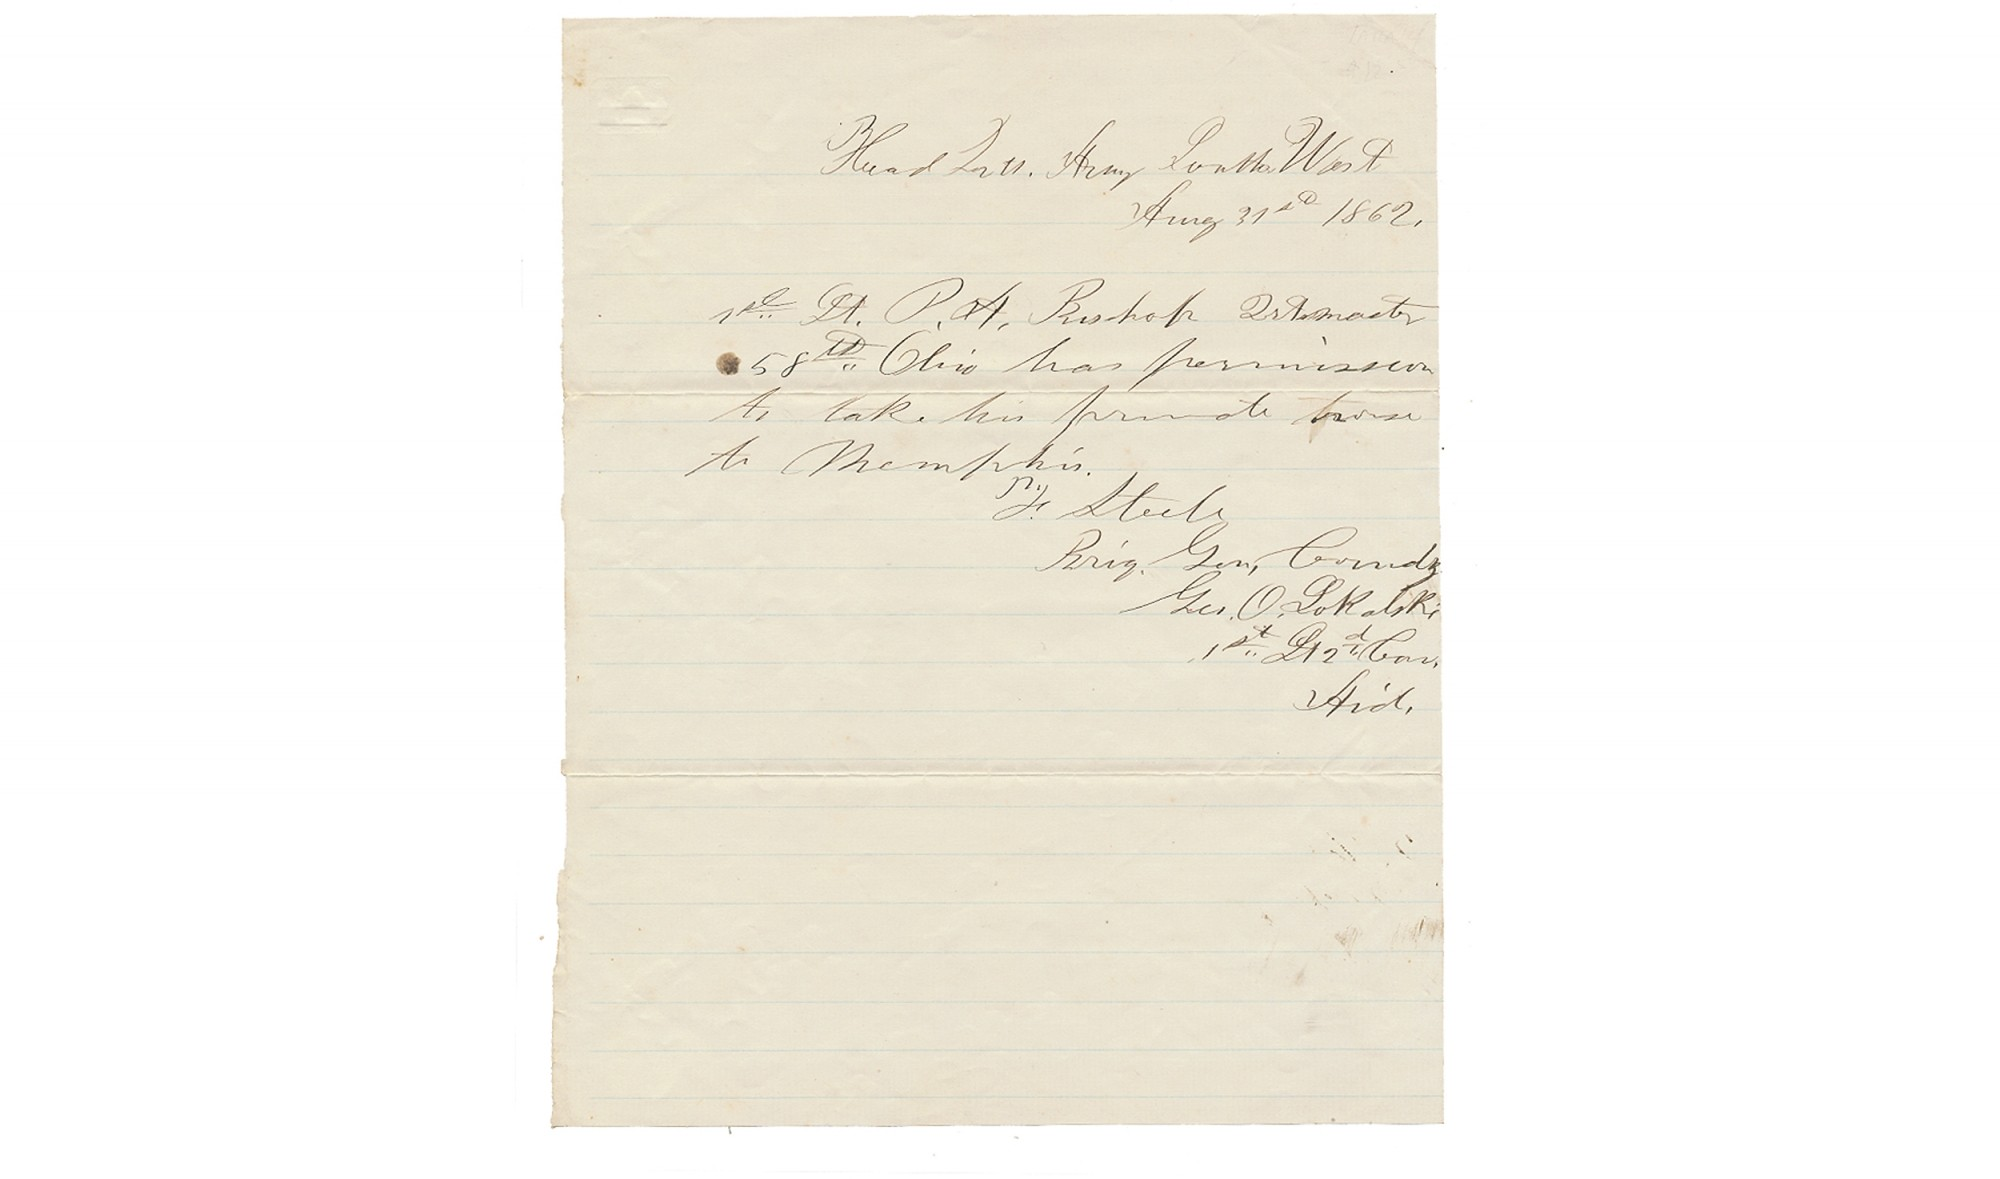 1862 HANDWRITTEN PASS FOR 58TH OHIO SOLDIER, HEADQUARTERS OF ARMY OF THE SOUTH WEST